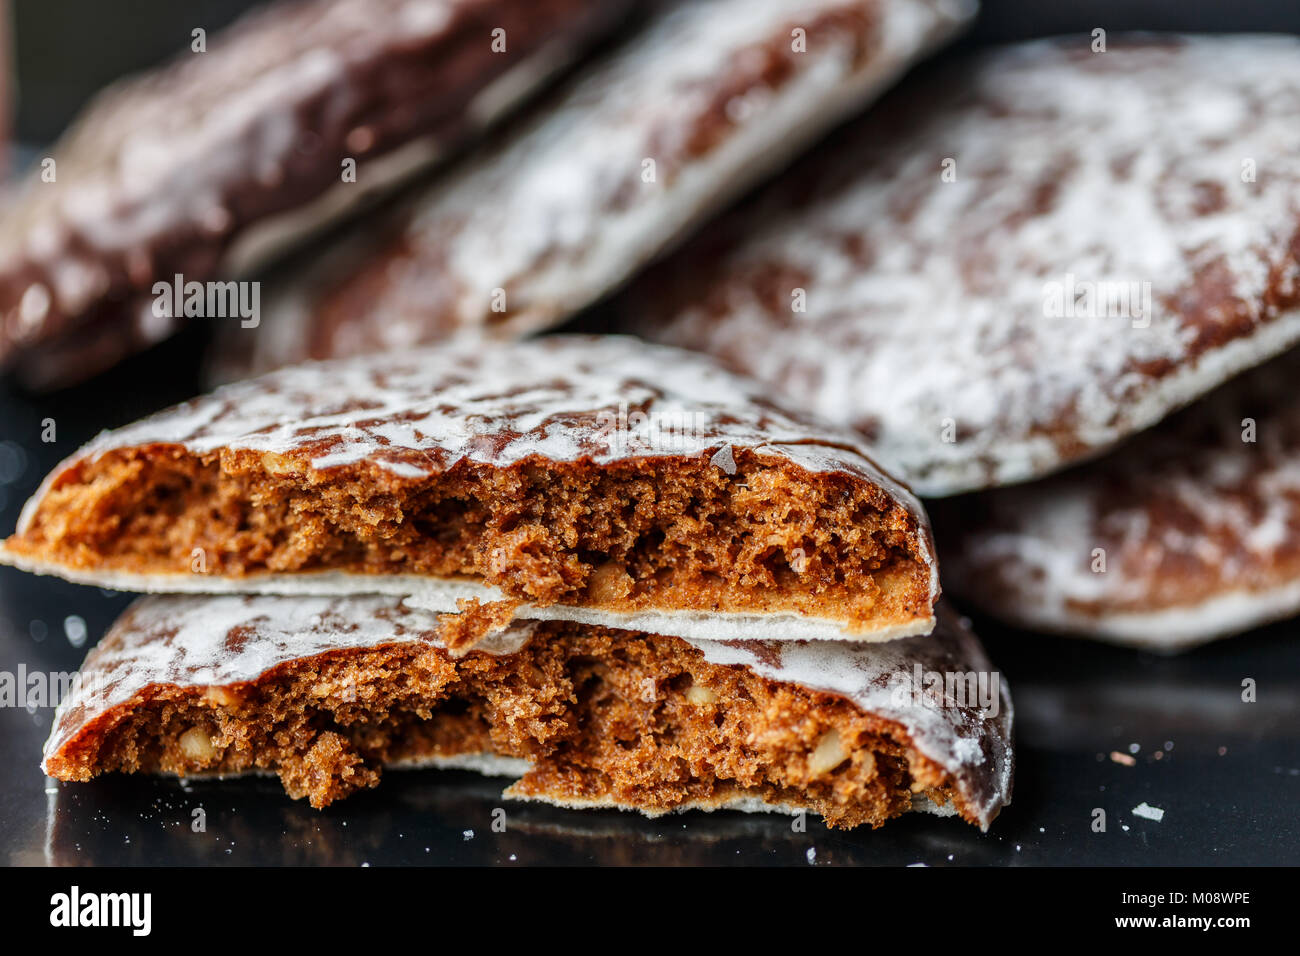 Round Lebkuchen (german gingerbread cookies) - Stock Image